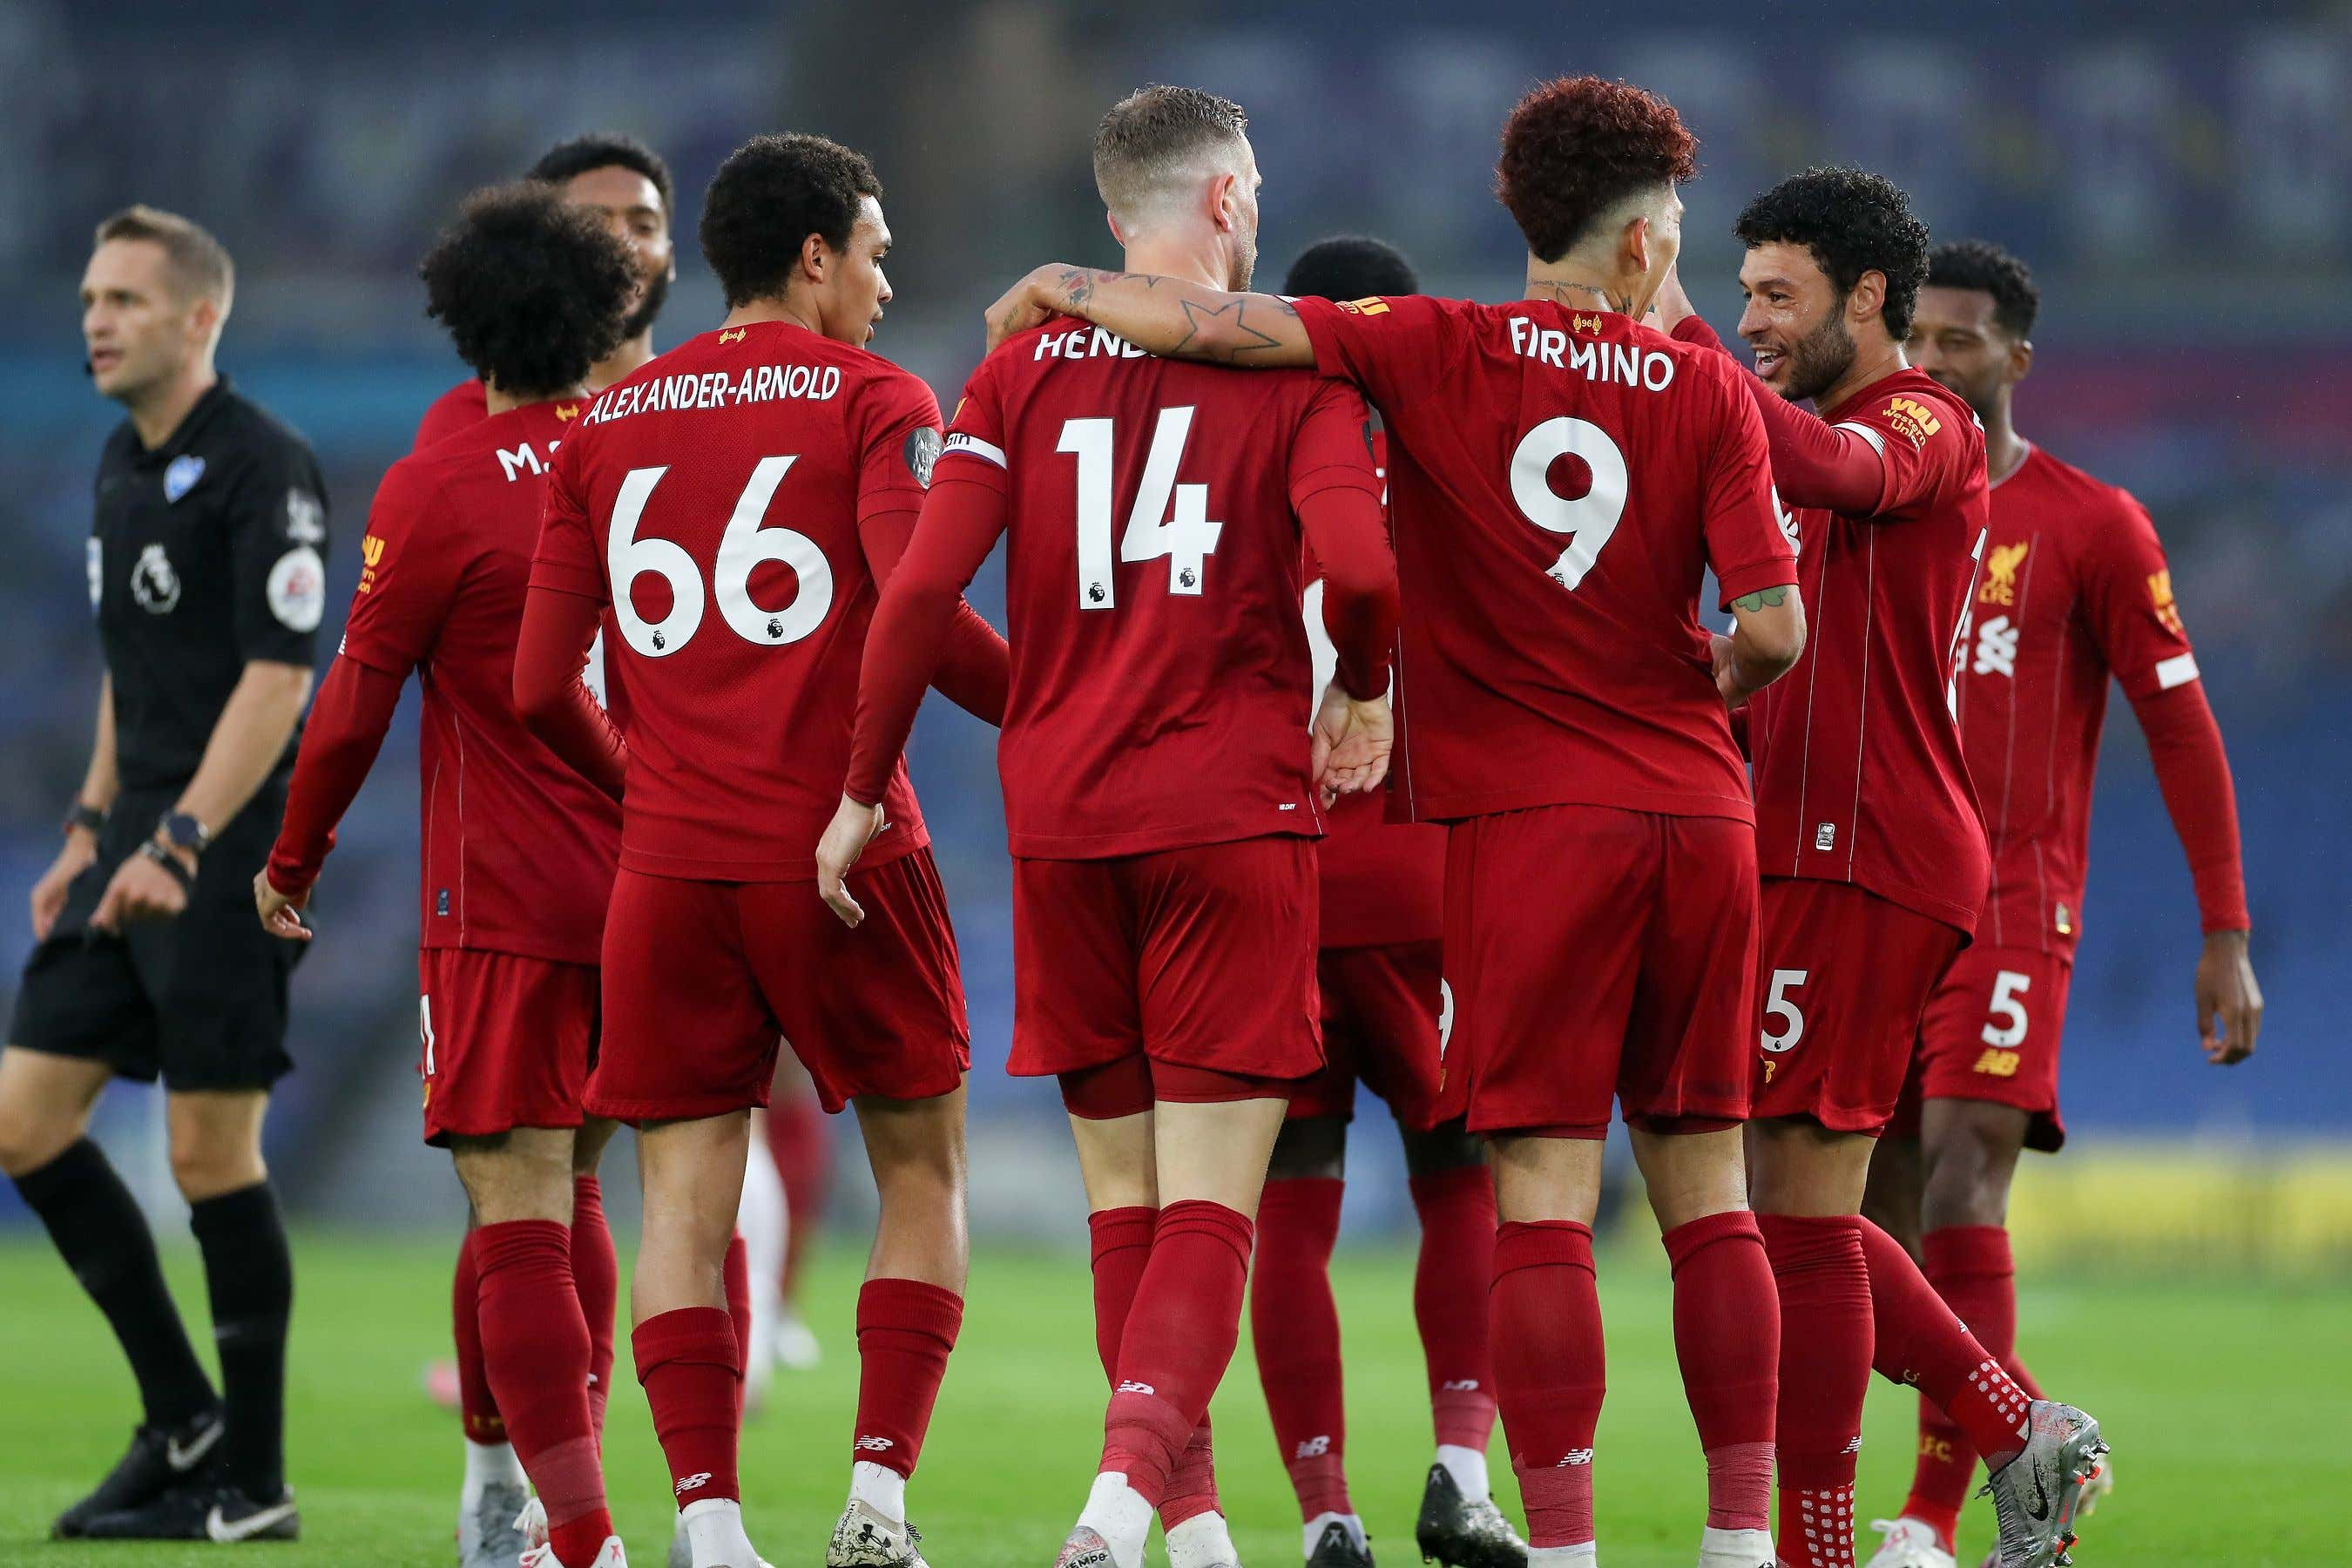 GOAL 0-2 Liverpool midfielder Jordan Henderson (14) celebrates with Liverpool forward Roberto Firmino (9) Liverpool defender Trent Alexander-Arnold (66)and Liverpool midfielder Alex Oxlade-Chamberlain (15) during the Premier League match between Brighton and Hove Albion and Liverpool at the American Express Community Stadium, Brighton and Hove